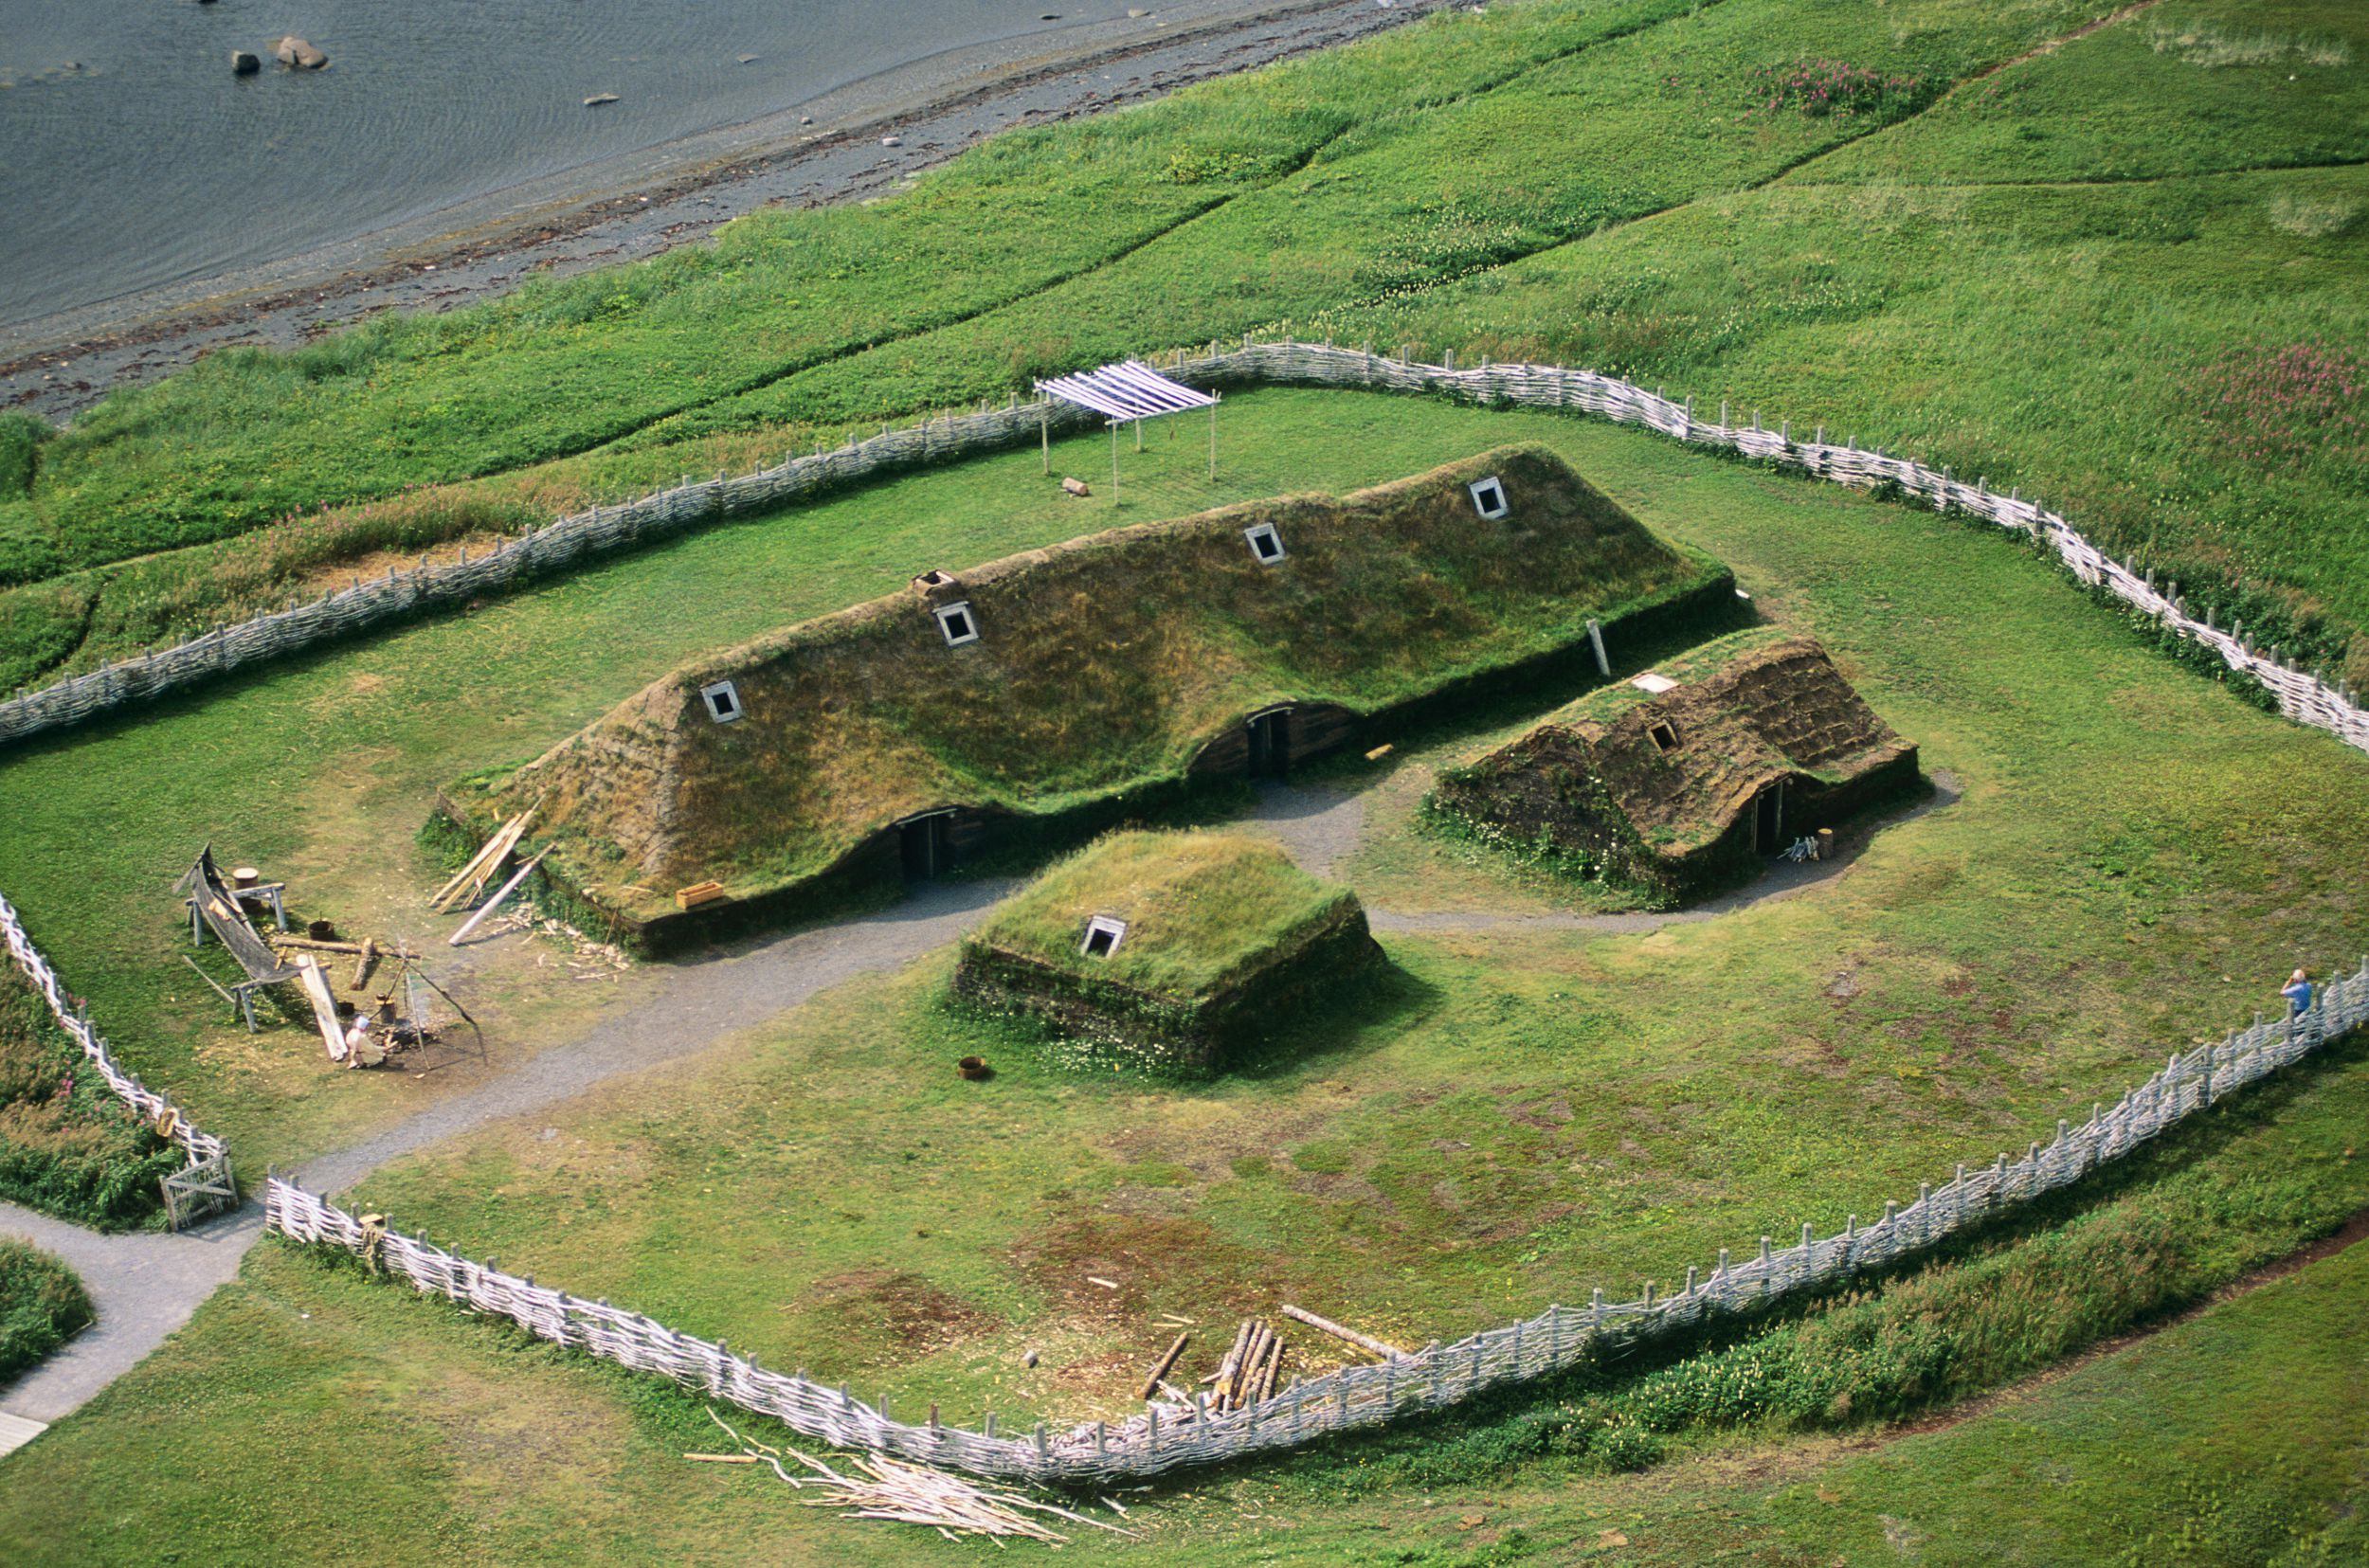 L'Anse aux Meadows - Evidence for Vikings in Canada